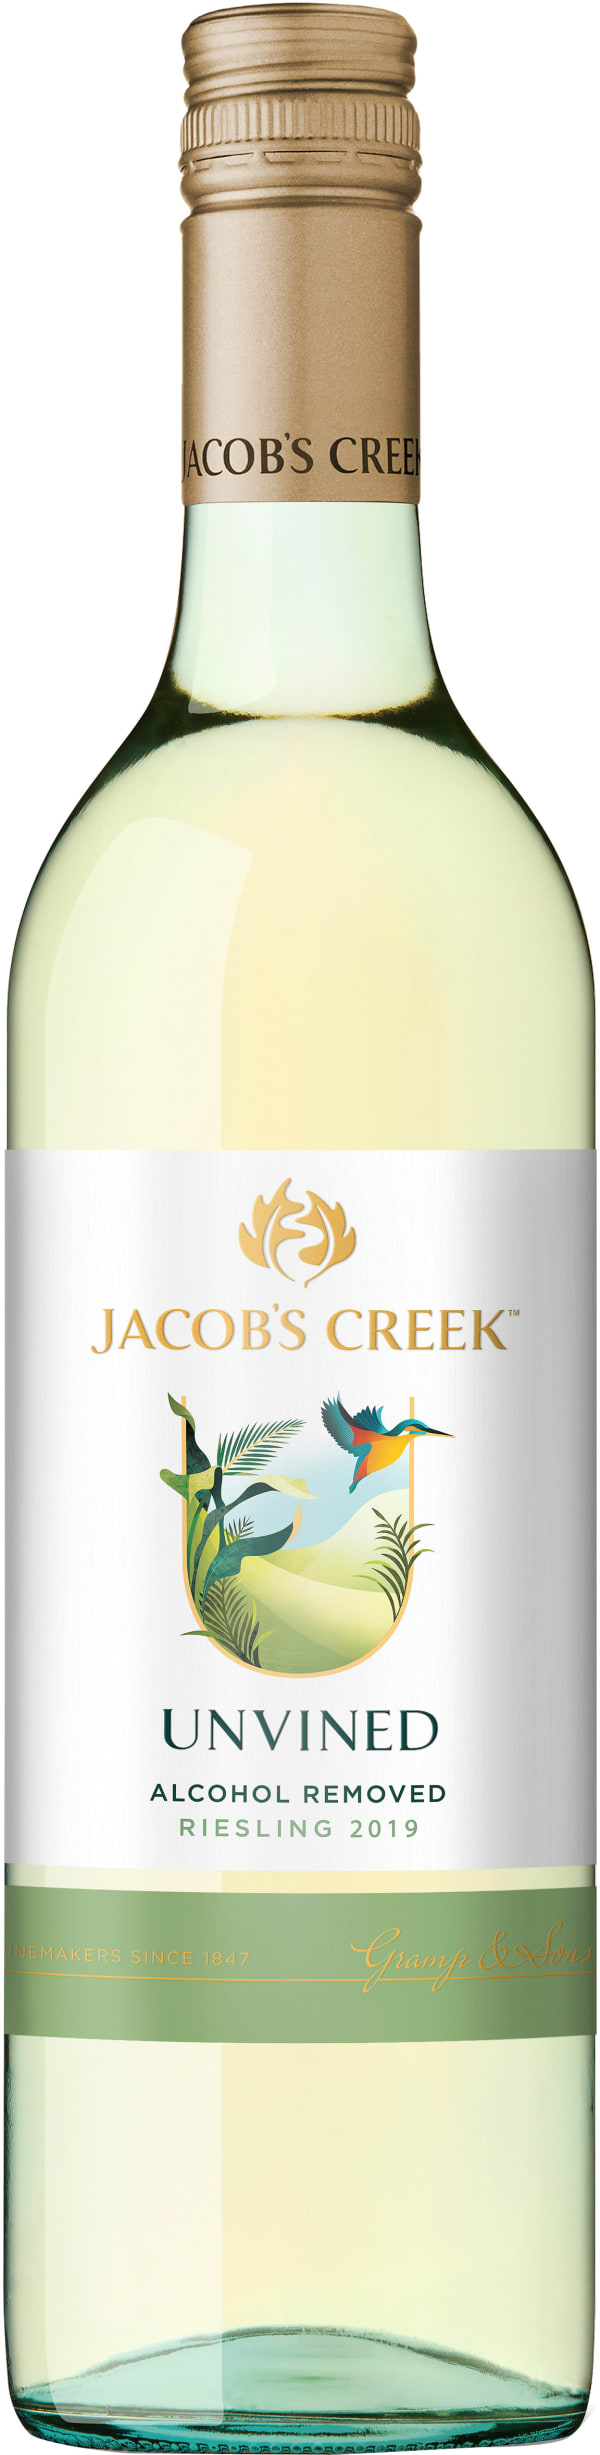 Jacob's Creek UnVined Riesling 2017